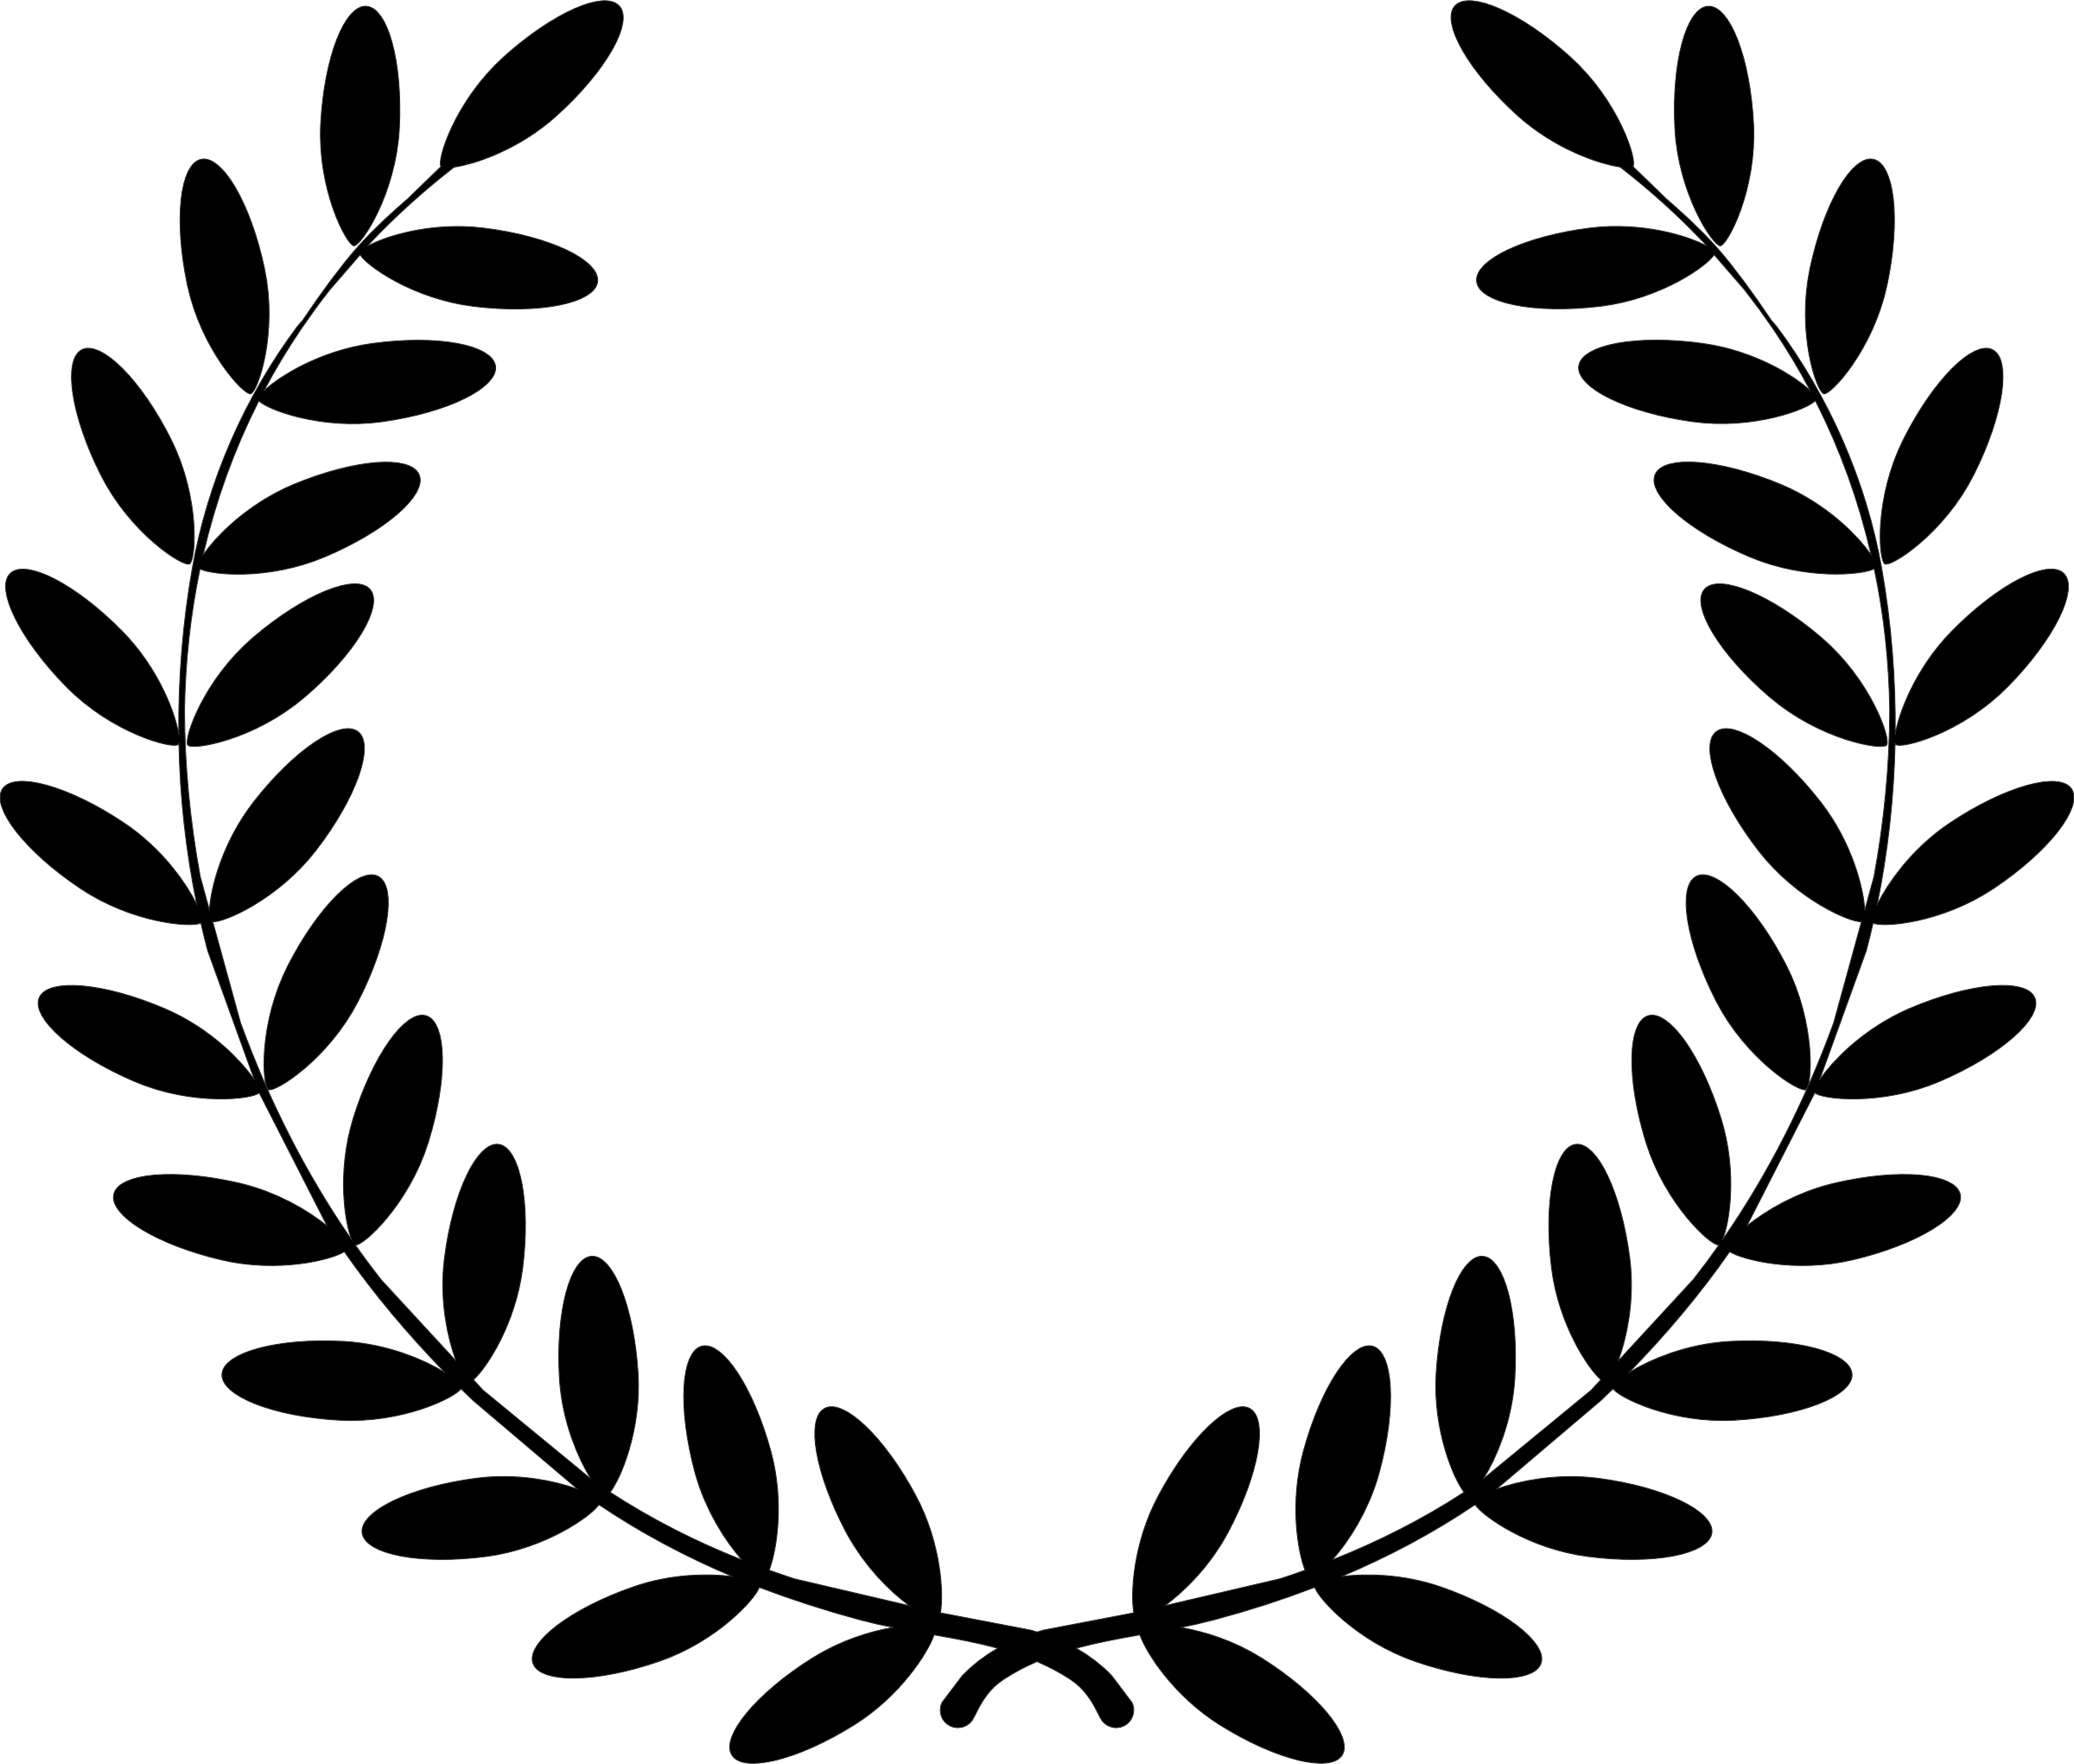 Free laurel wreath clipart.